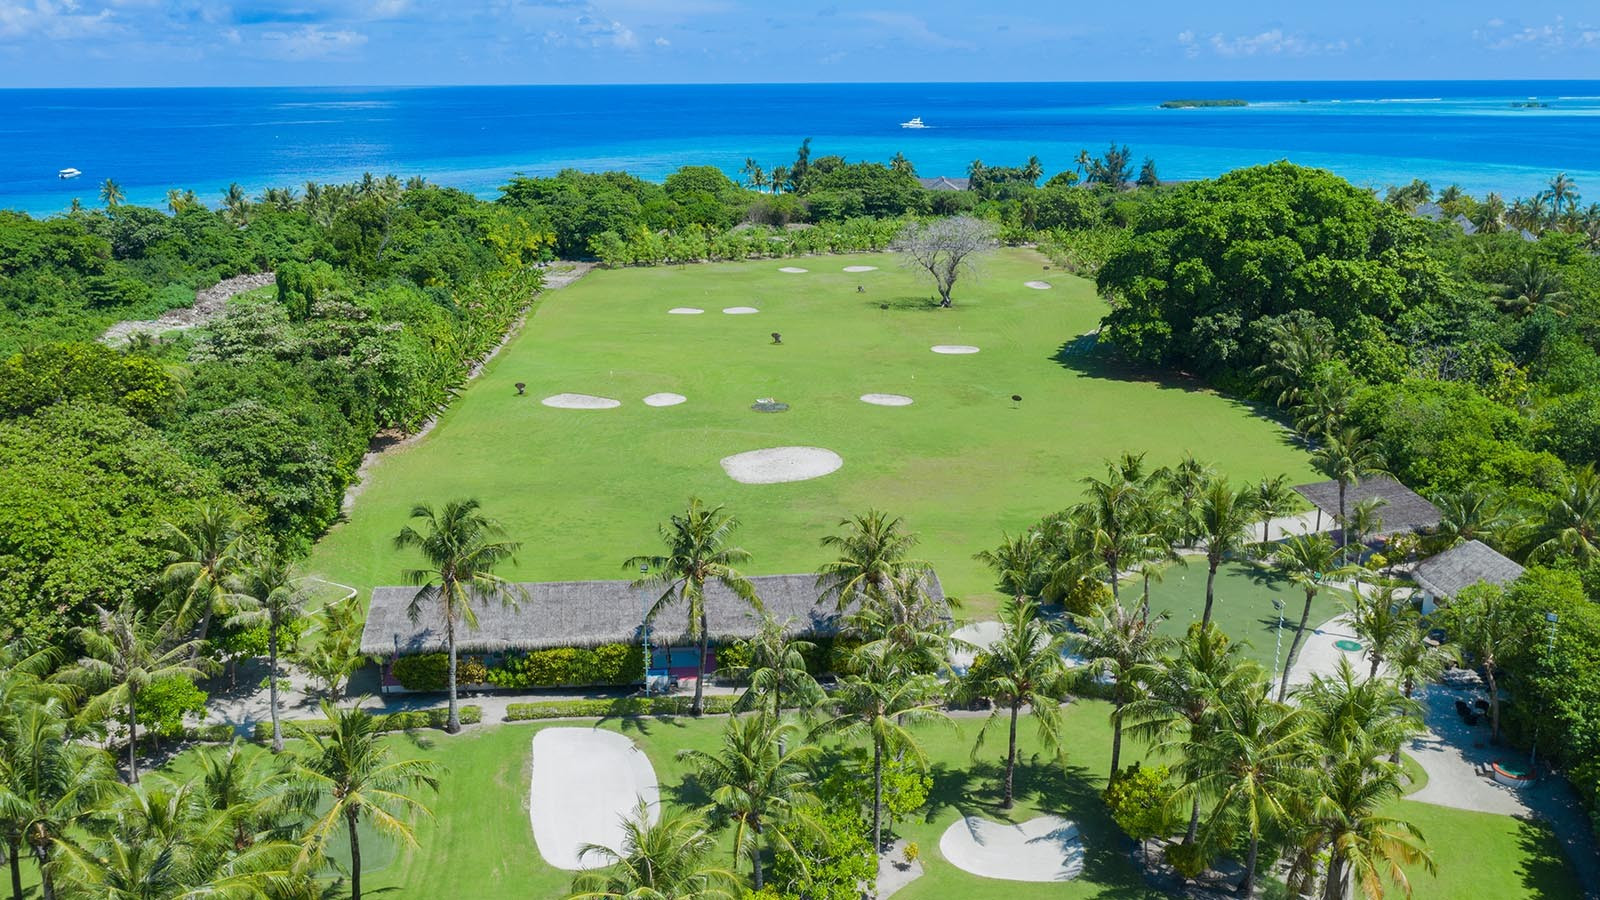 Are You a Golf Enthusiast? Get Swinging in Maldives